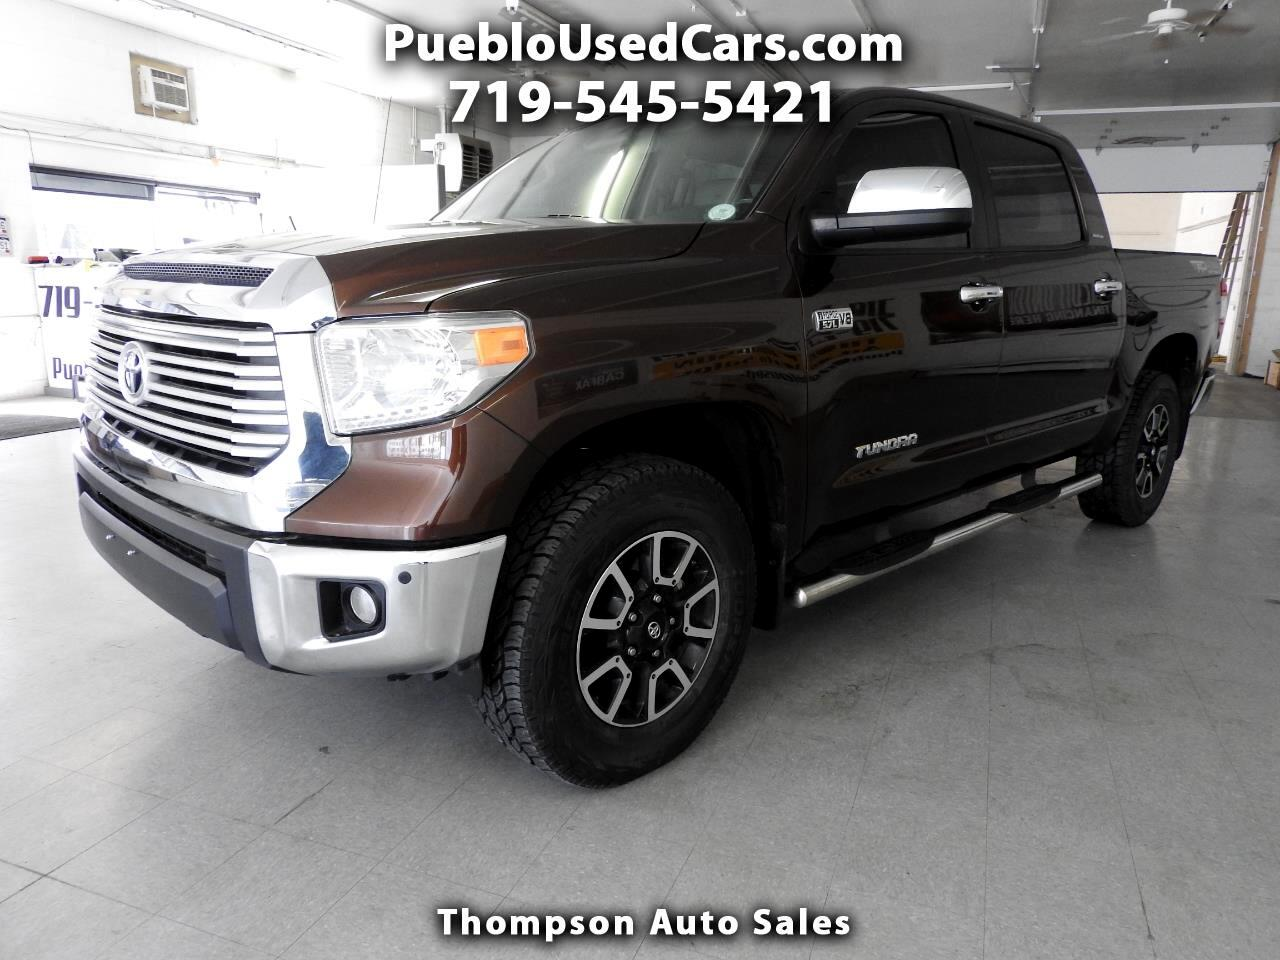 2014 Toyota Tundra Limited CrewMax 4WD TRD